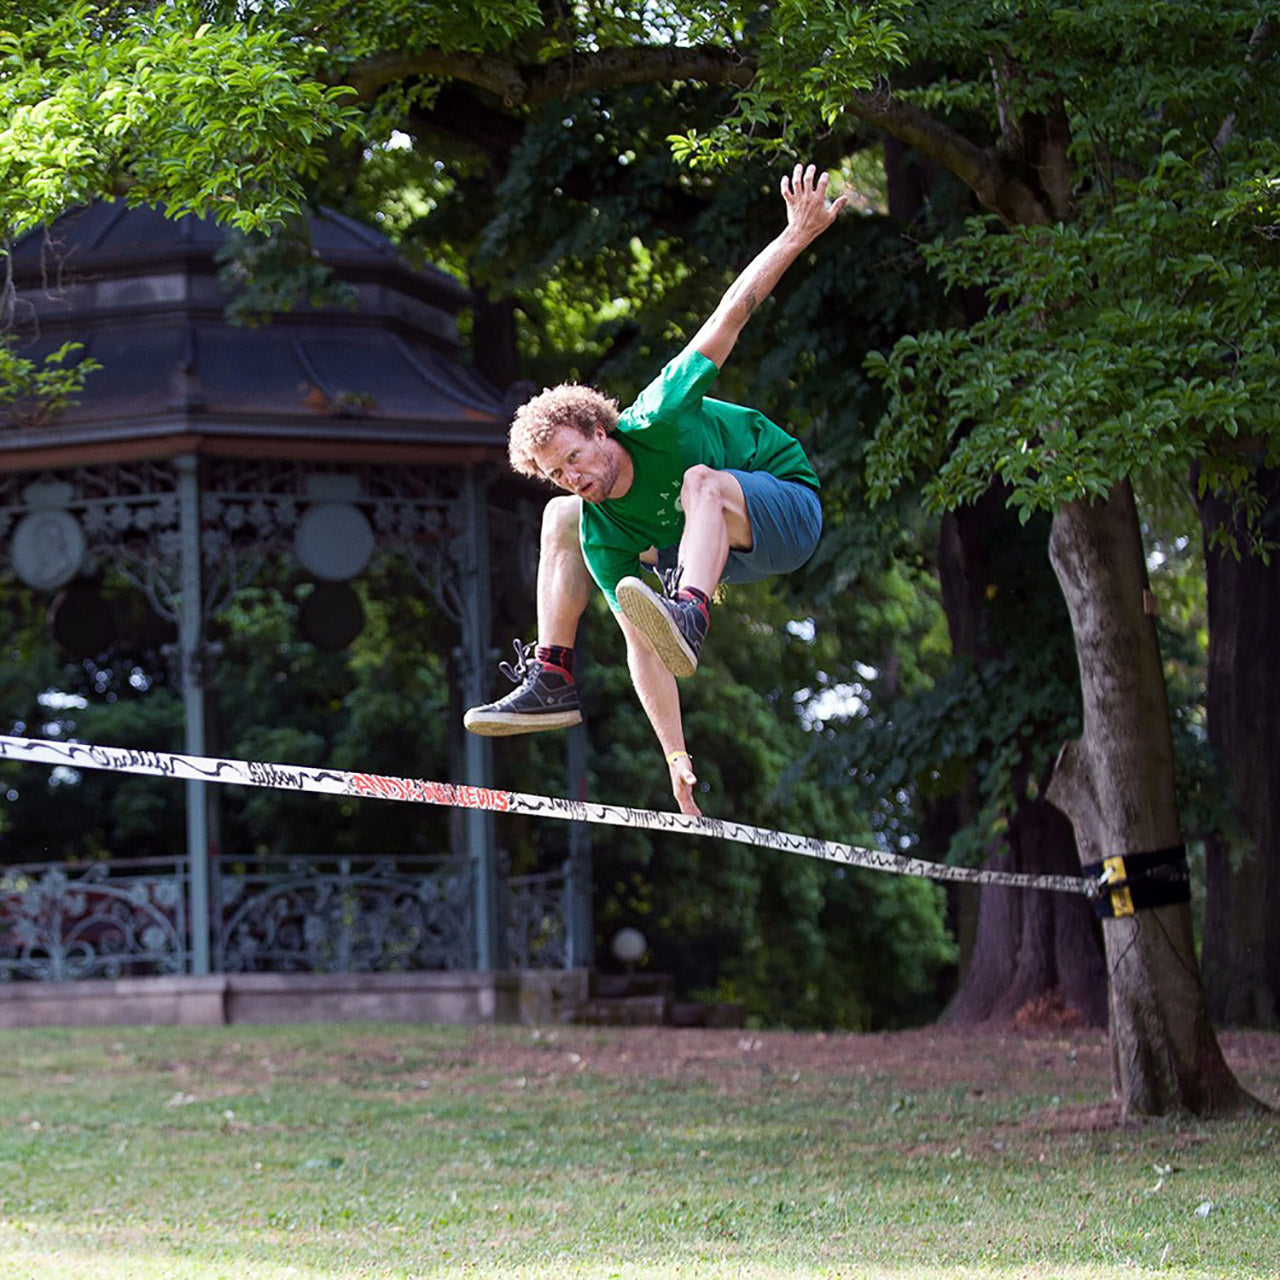 Gibbon Andy Lewis Trickline Signature Slackline Set In Use